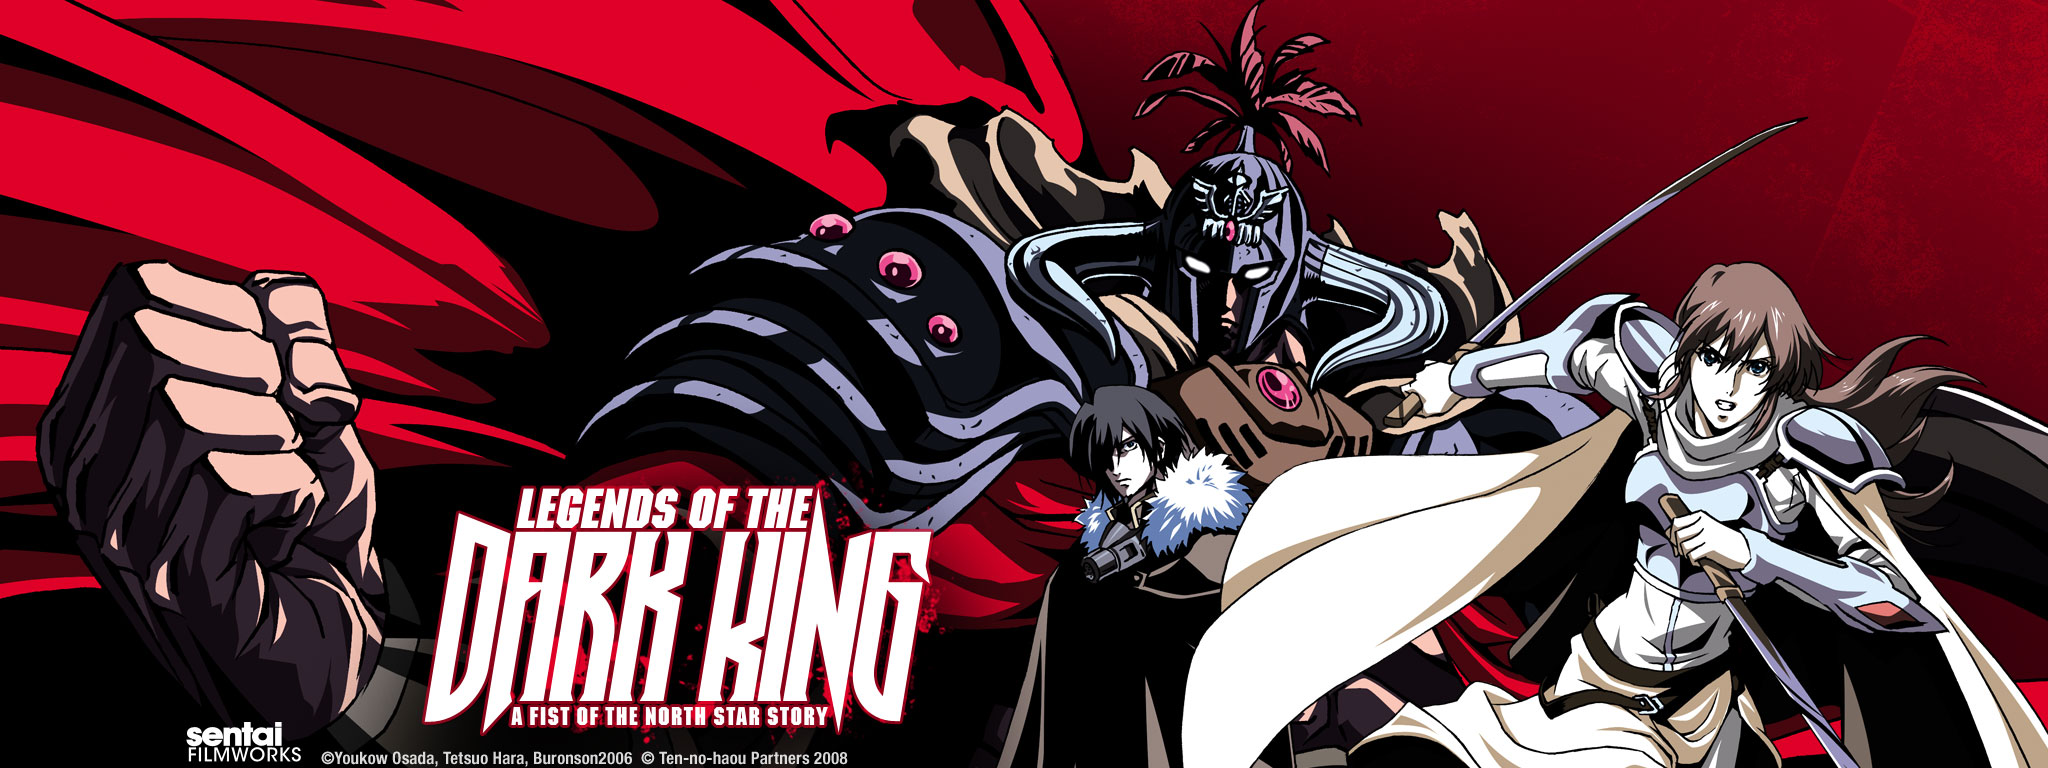 Legends of the Dark King ~ A Fist of the North Star Story